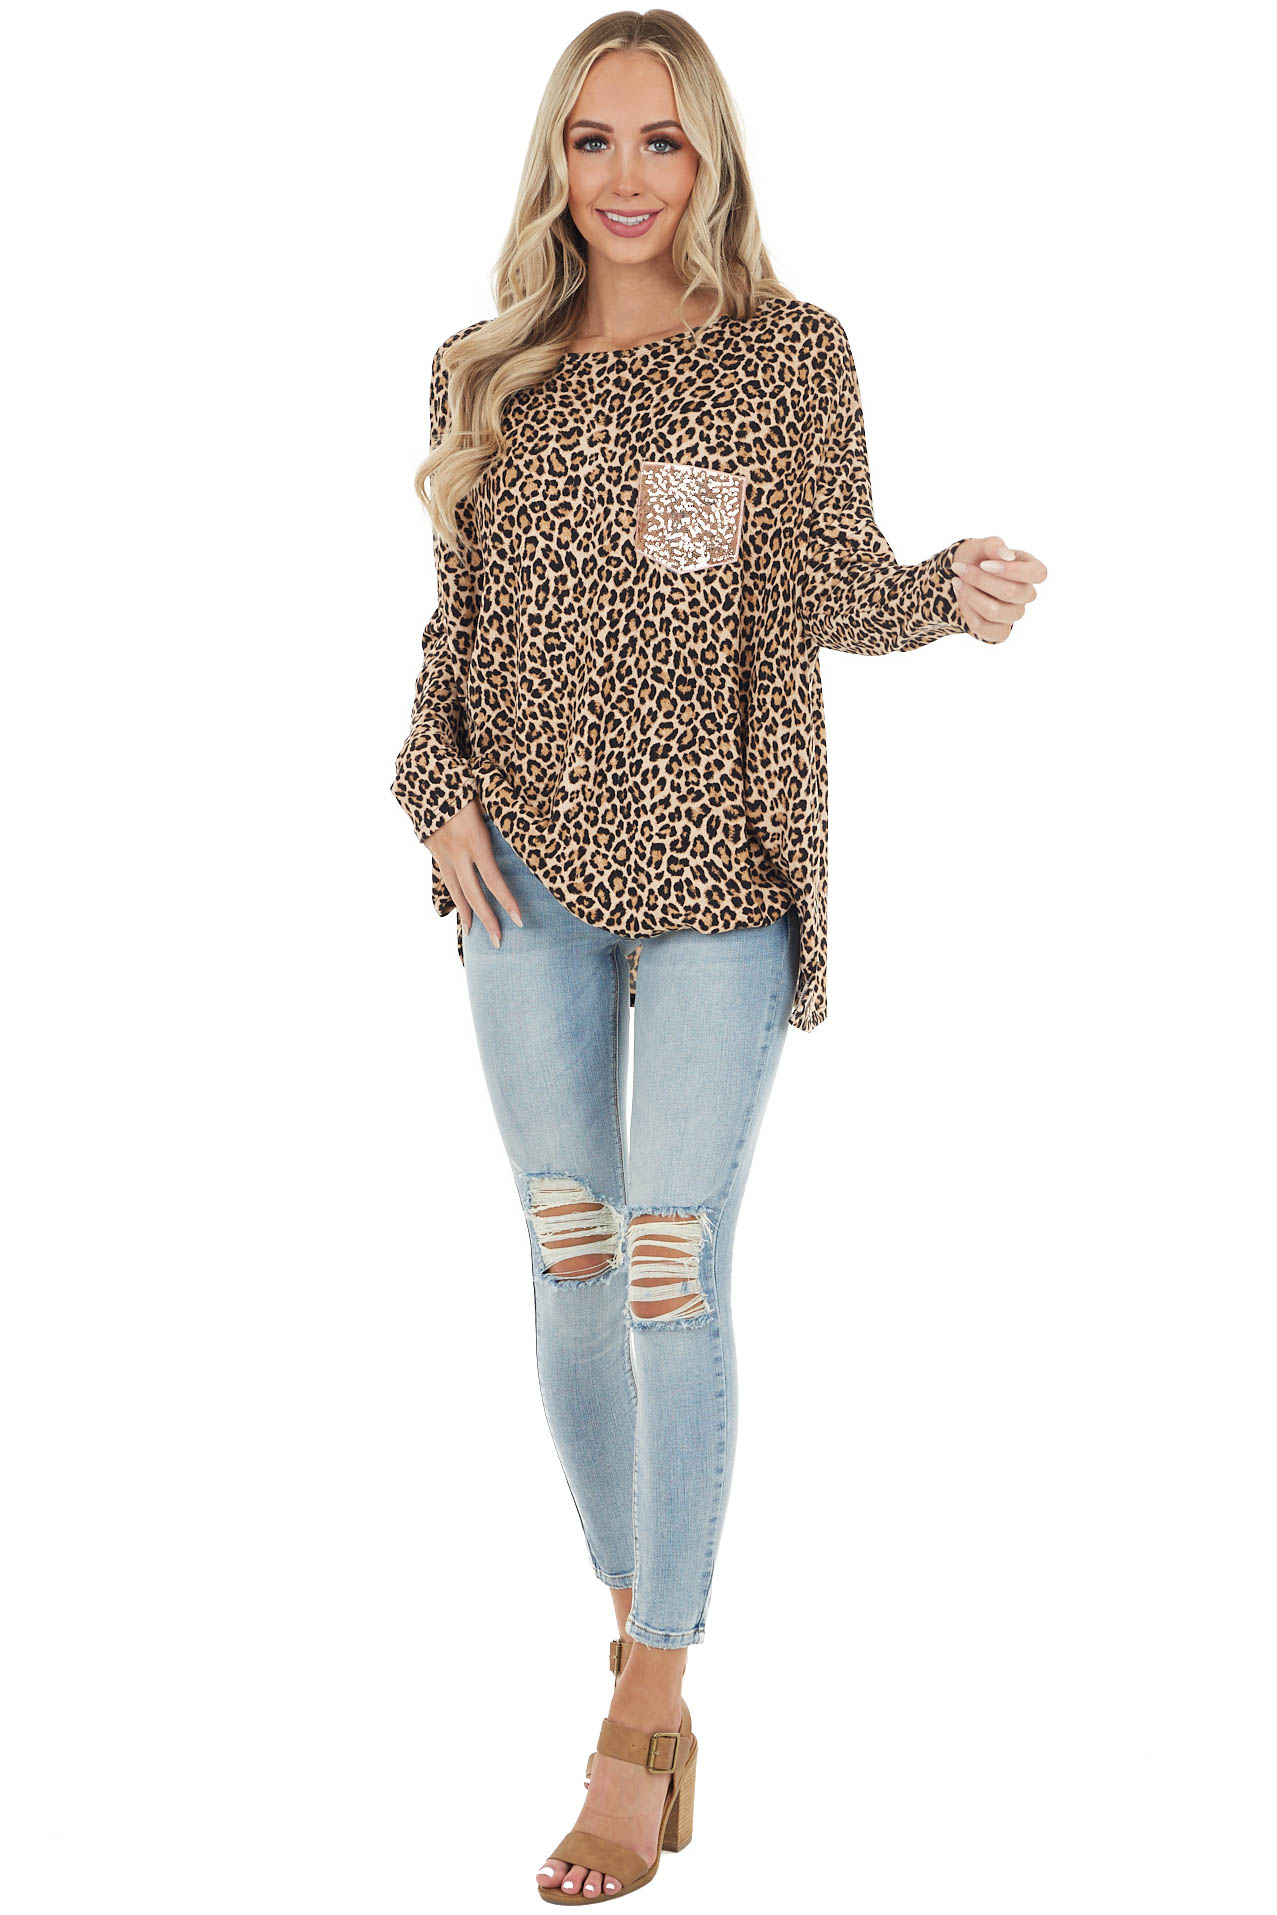 Beige Leopard Print Long Sleeve Top with Sequin Chest Pocket